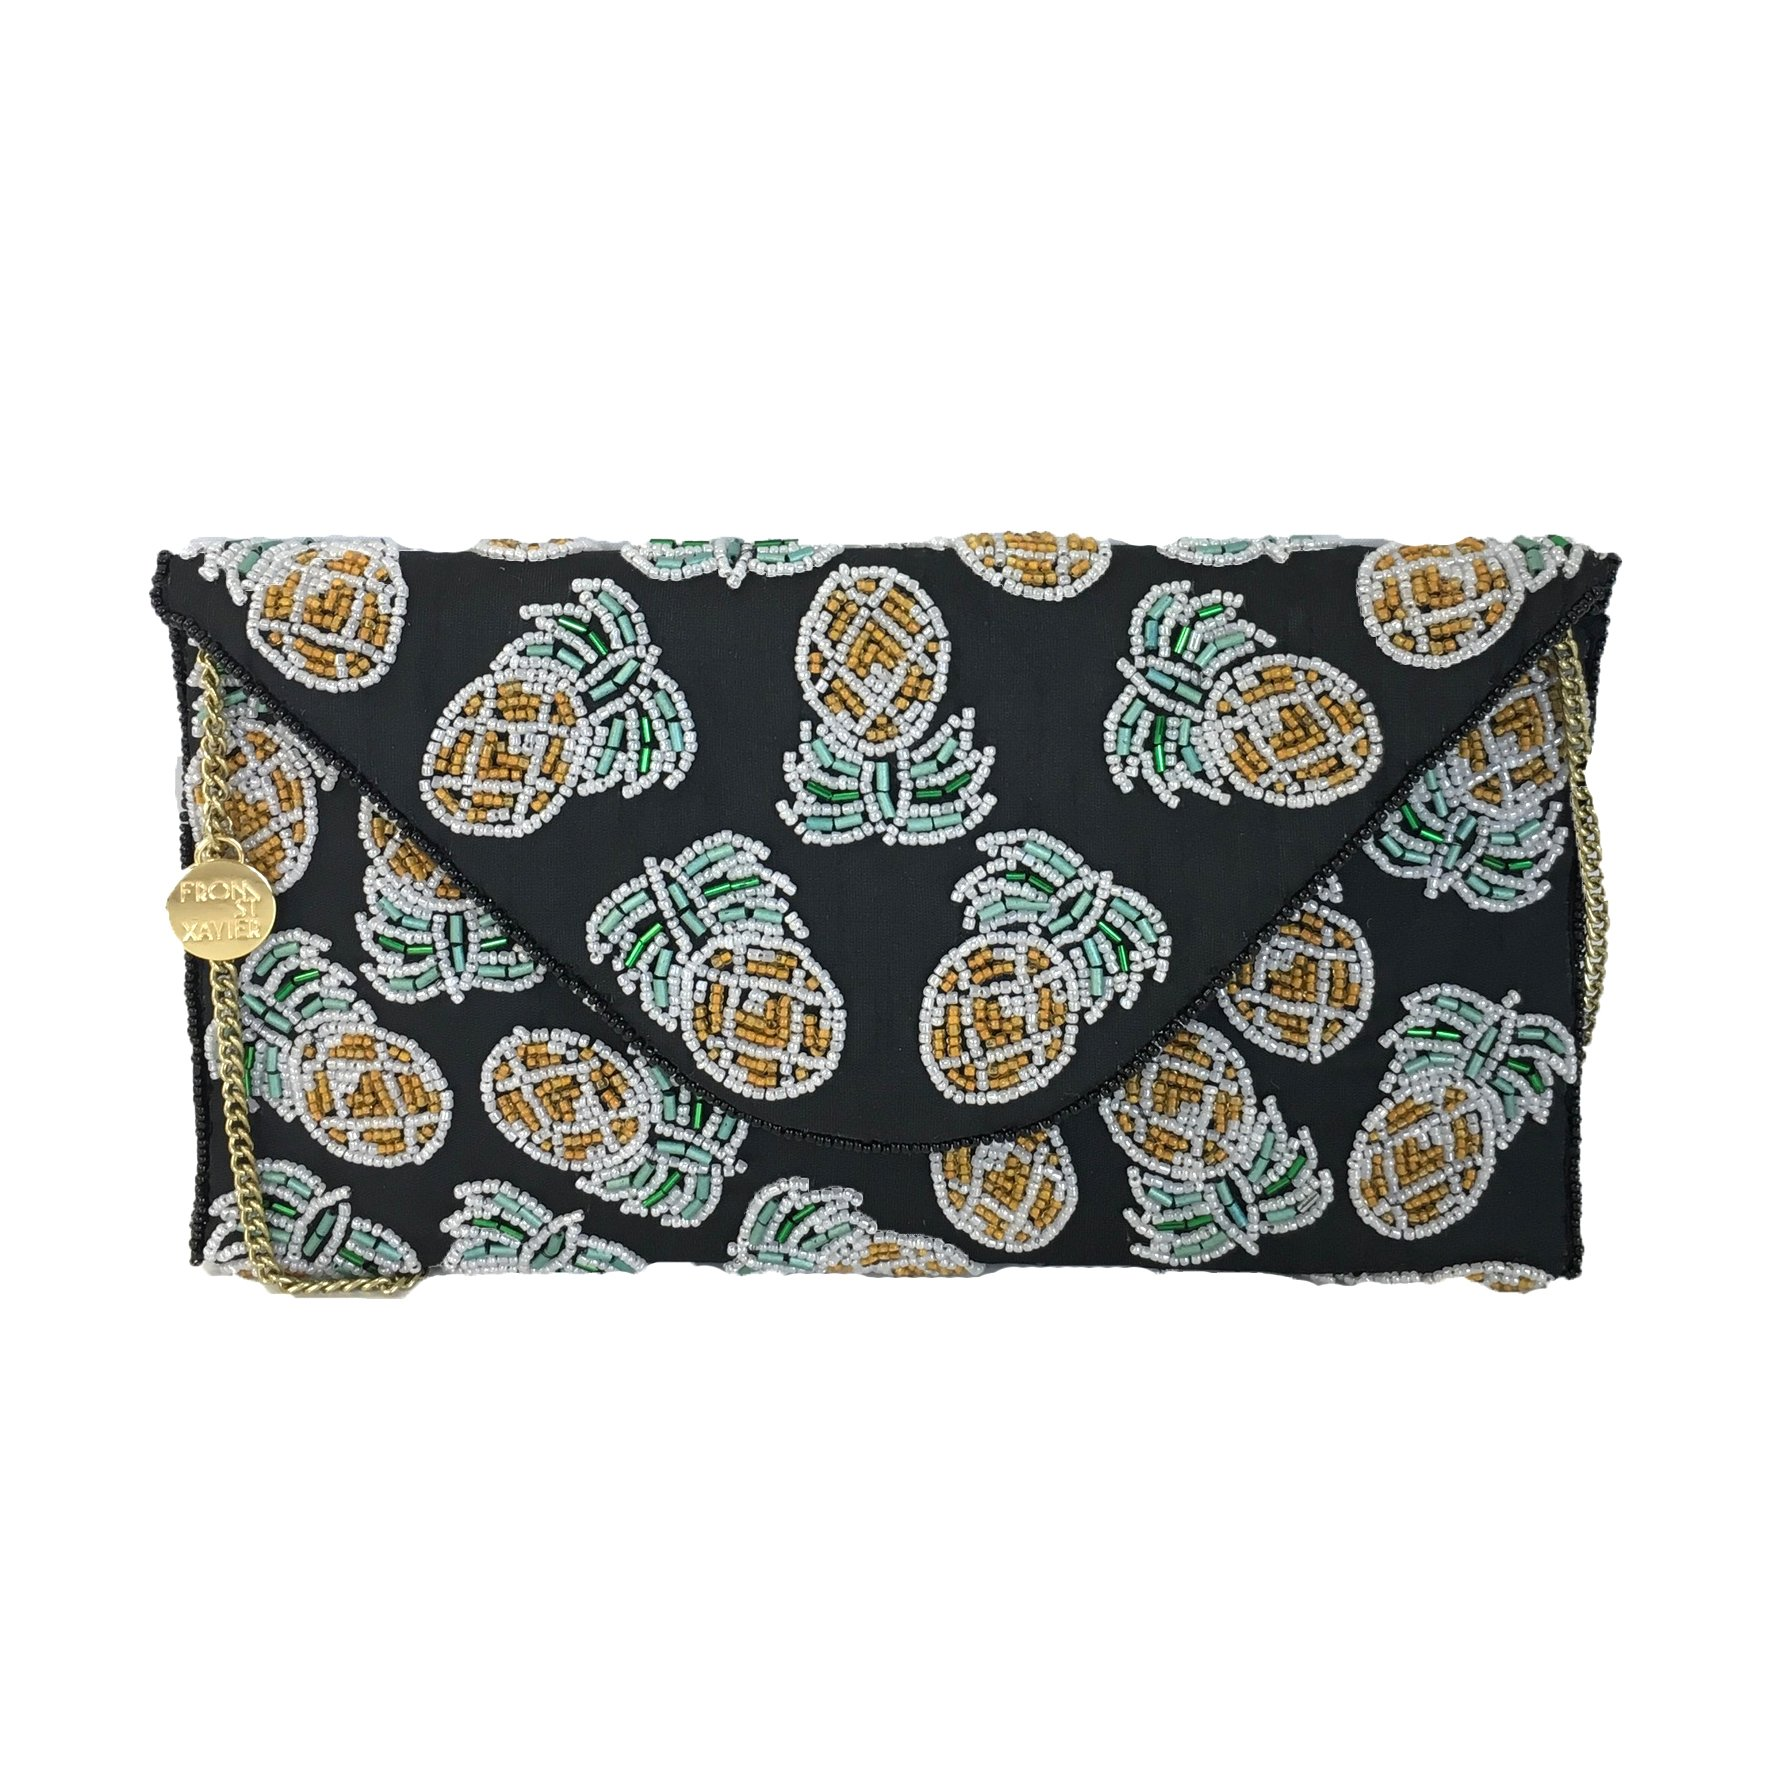 From St Xavier Pina Pineapple Beaded Convertible Clutch, Black/Yellow